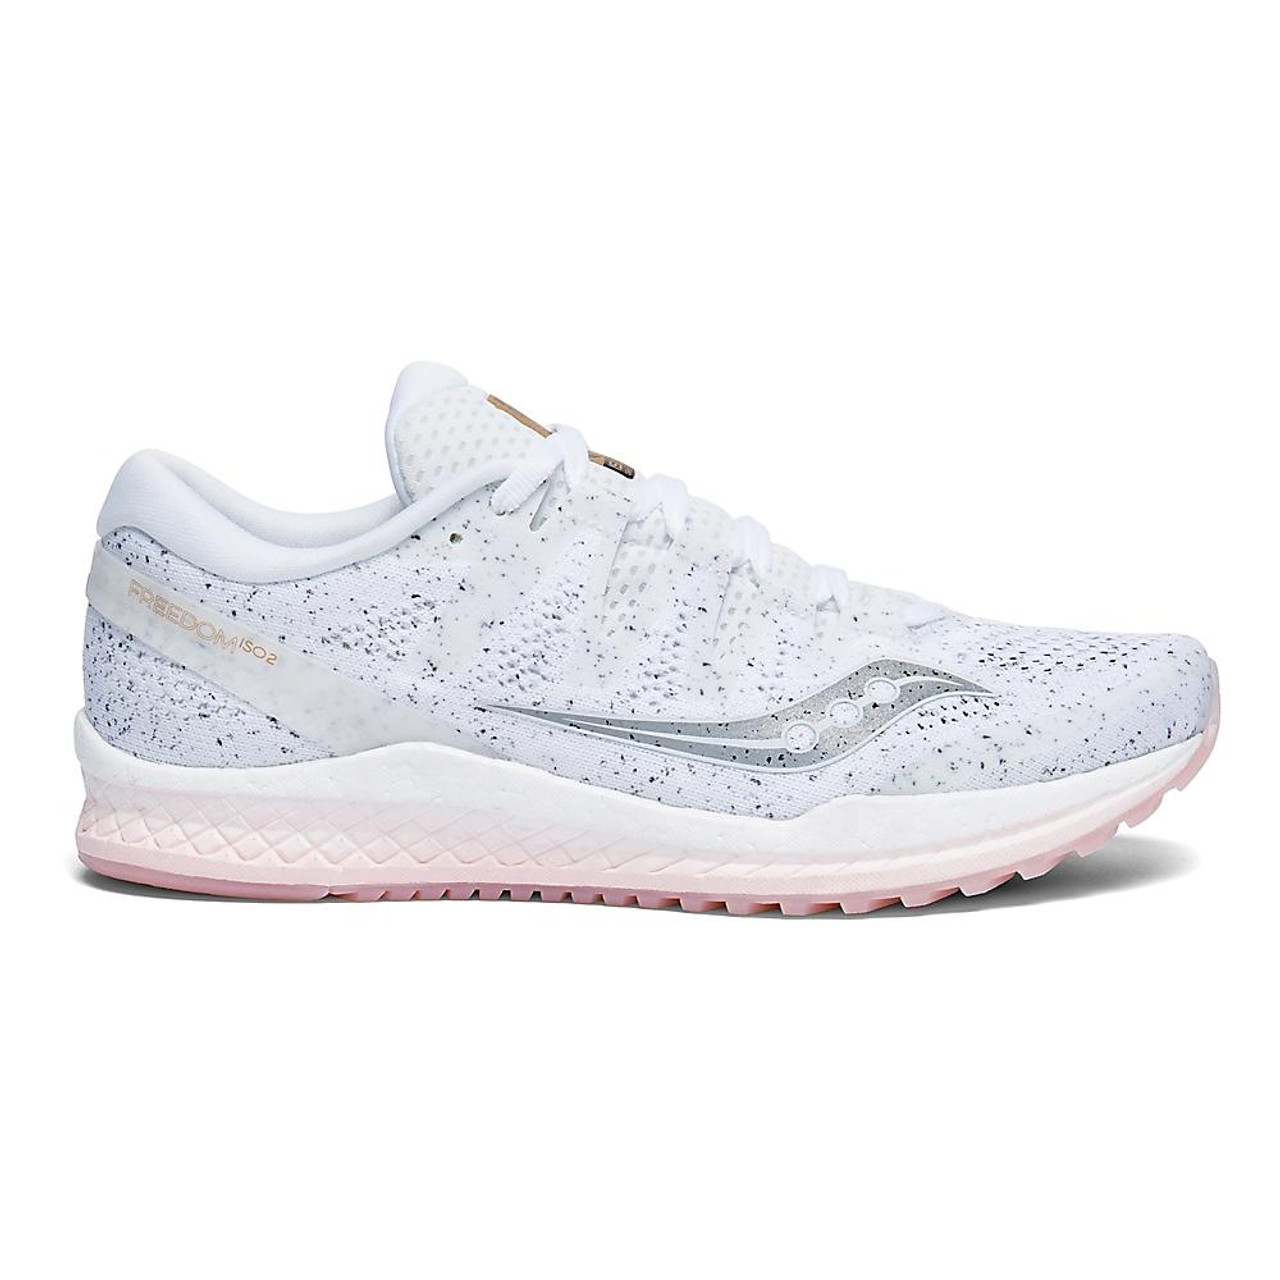 Wode los hombres Saucony Freedom ISO 2 Running Shoe Size 6 M White